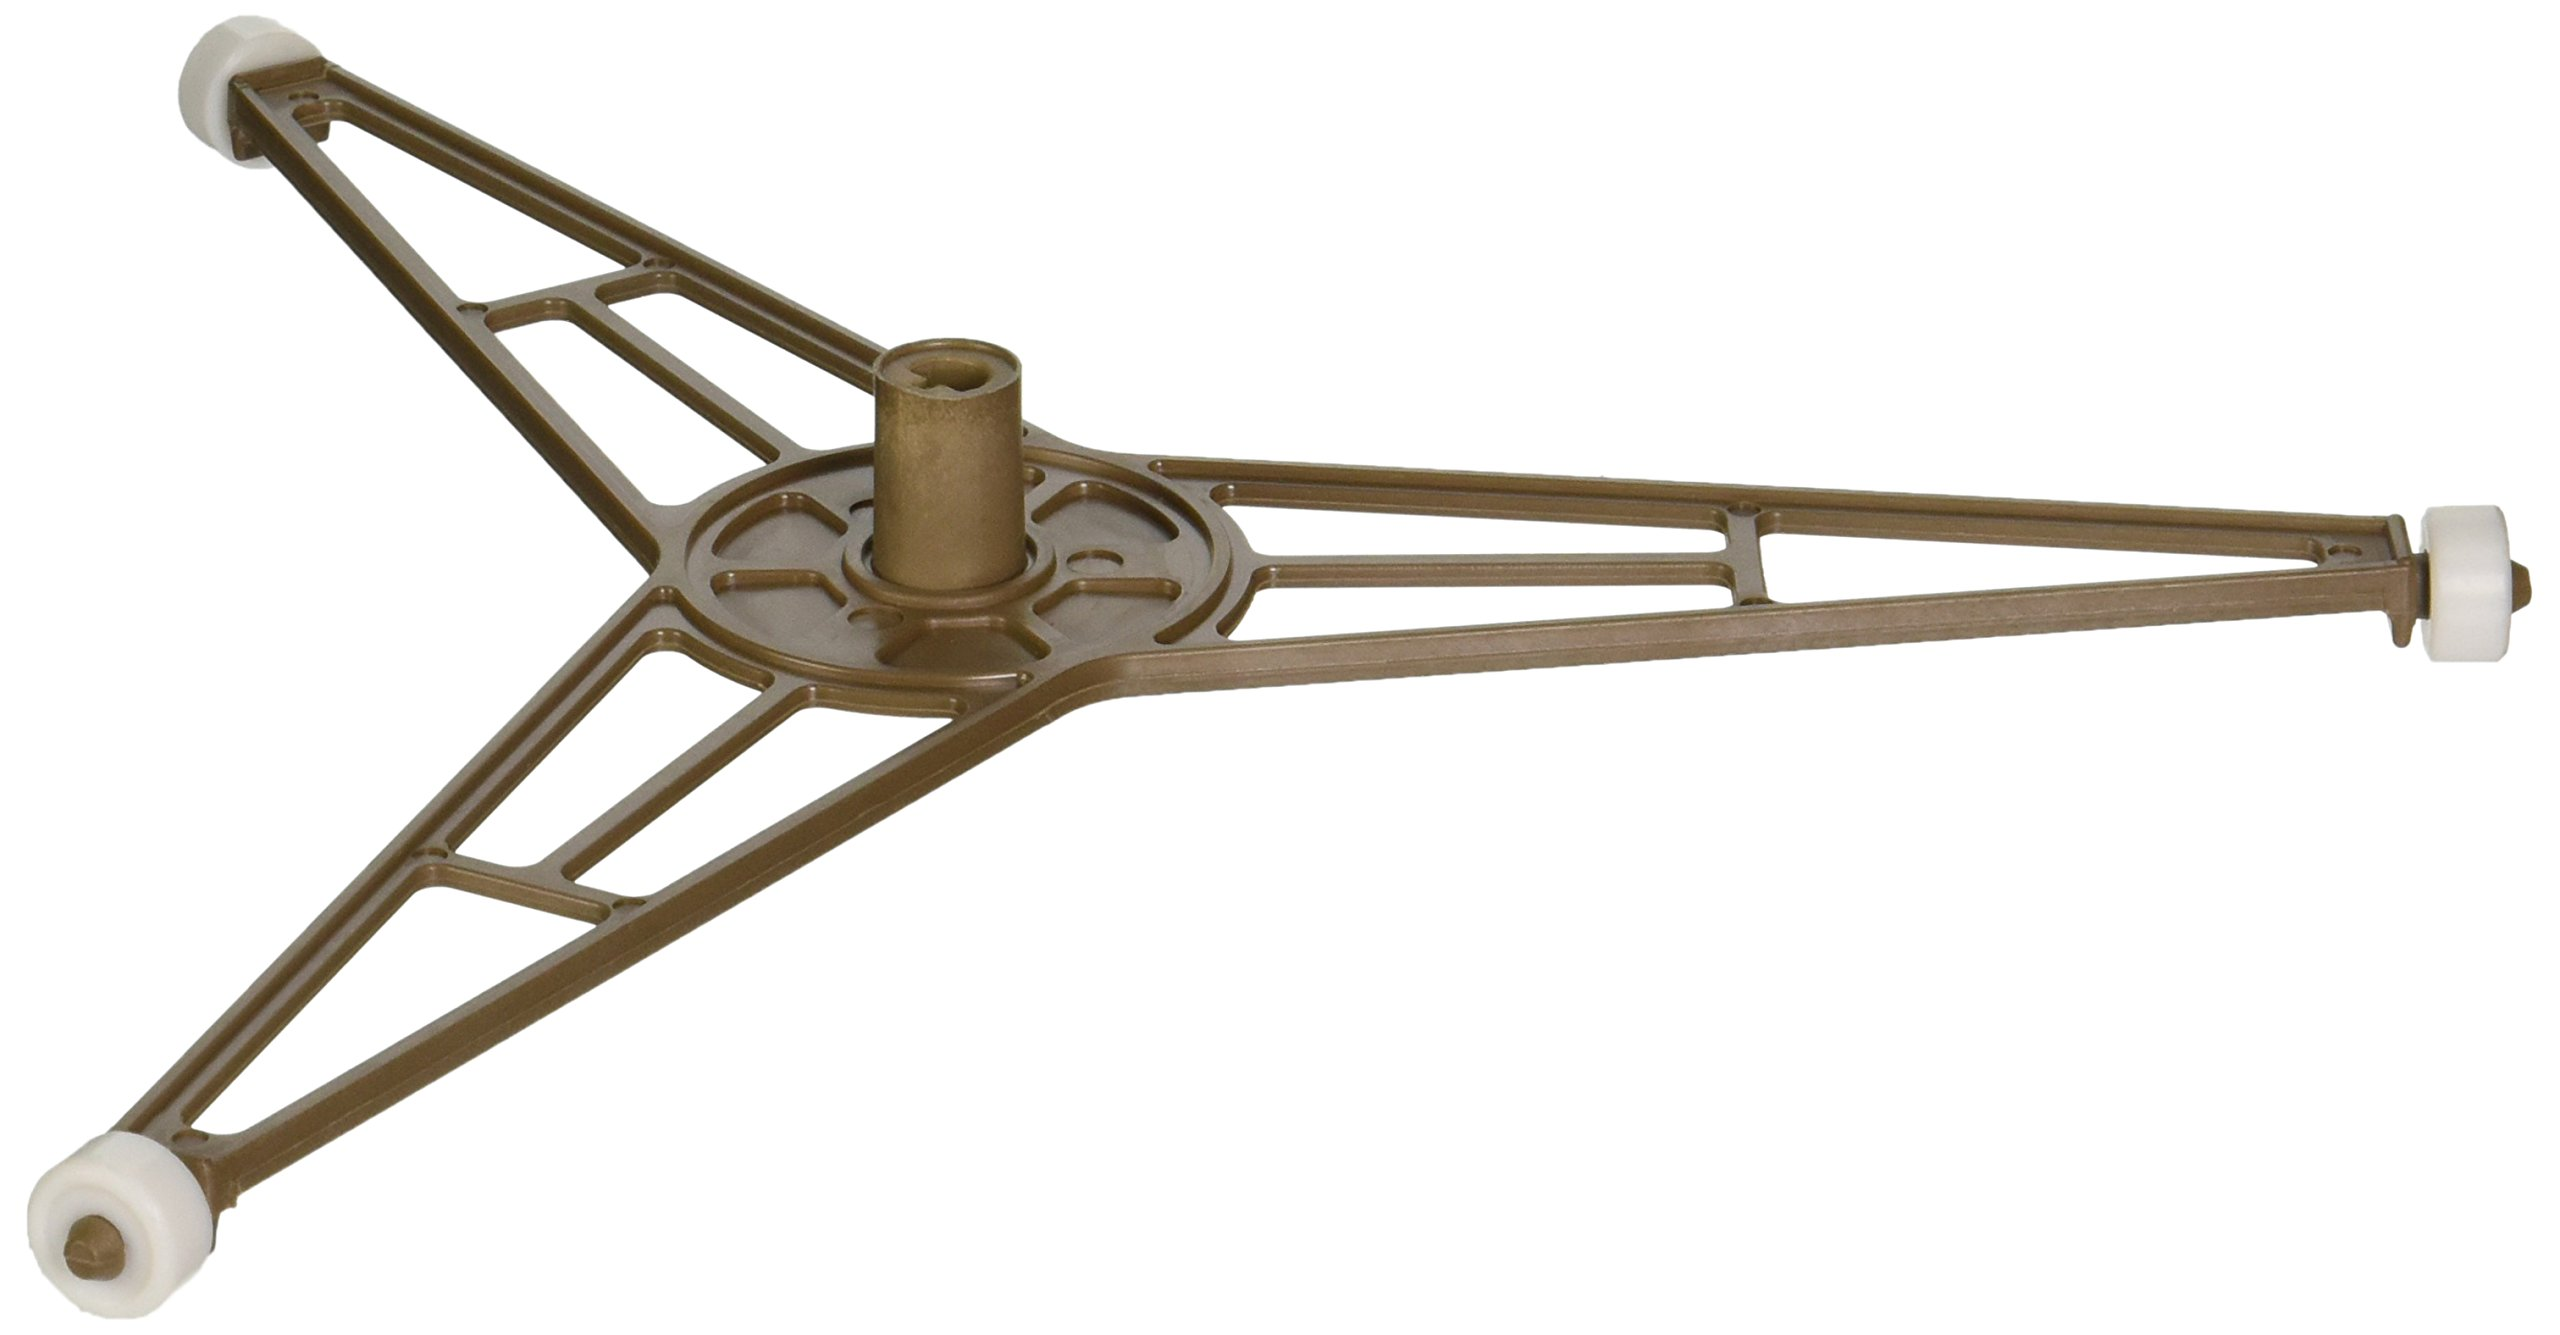 Whirlpool Part Number 8205151: Turntable Support